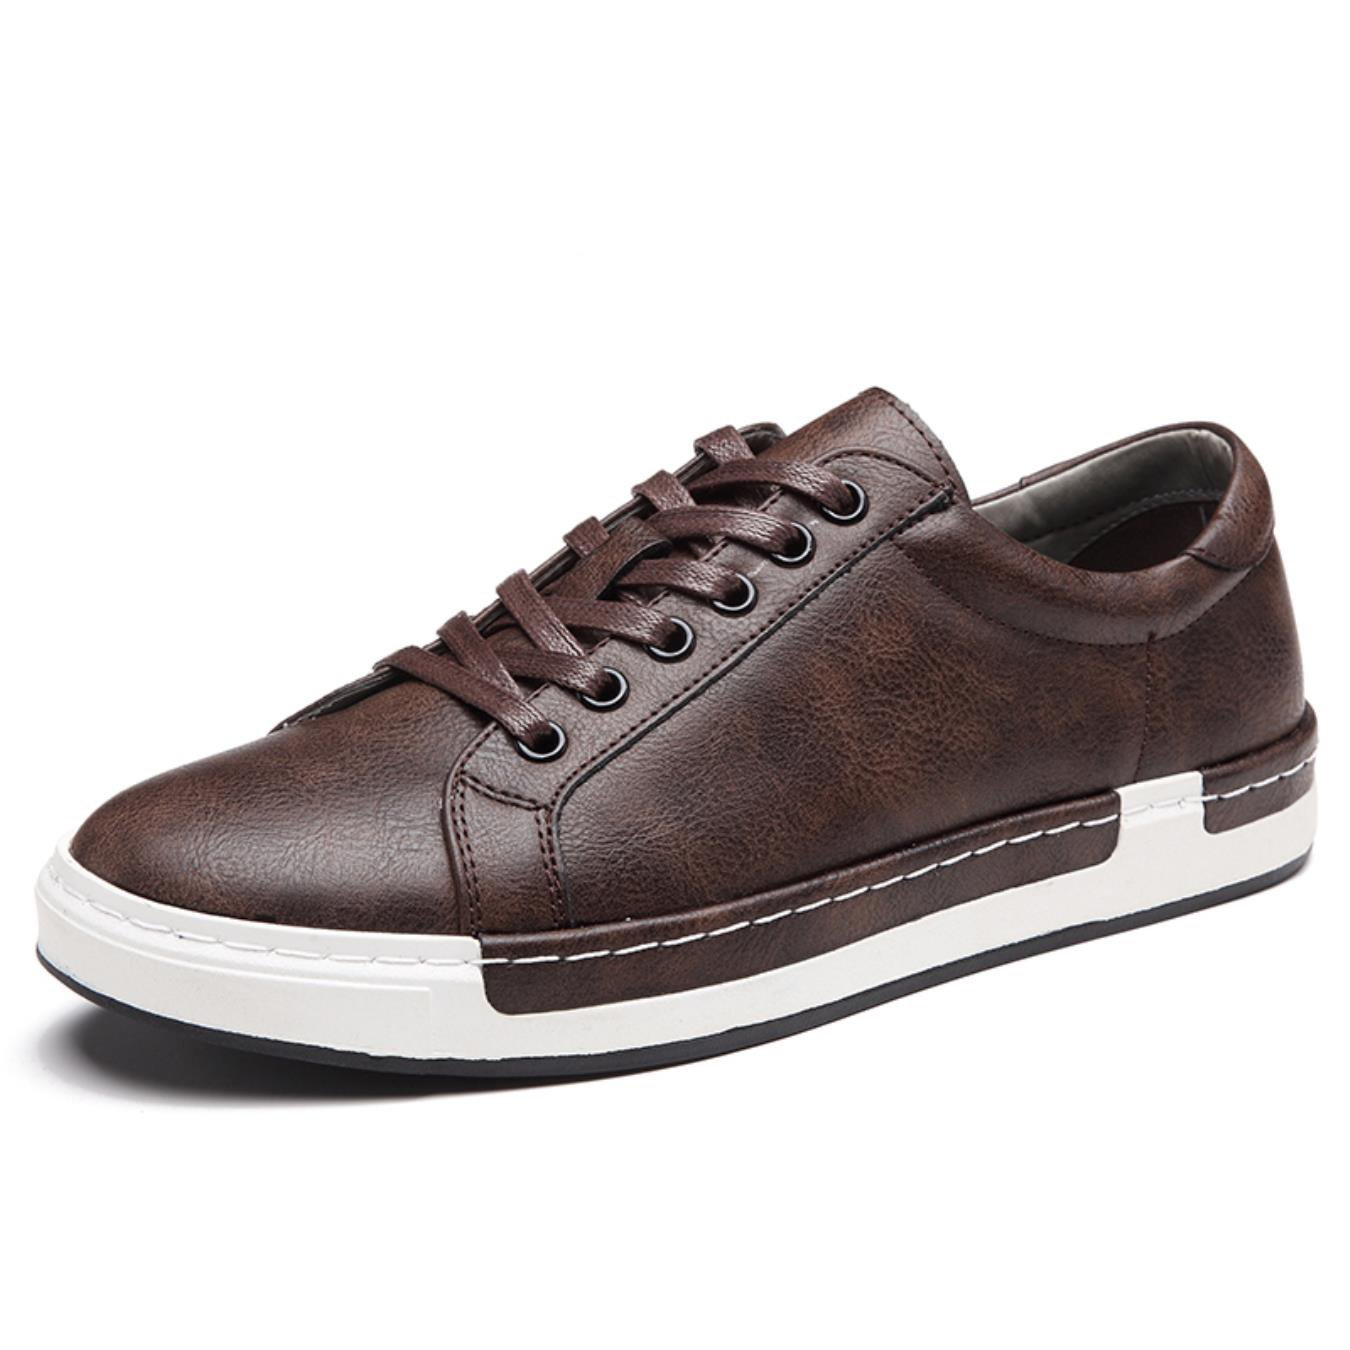 Autumn New Casual Shoes Mens Leather Flats Lace-Up Shoes Simple Stylish Male Shoes